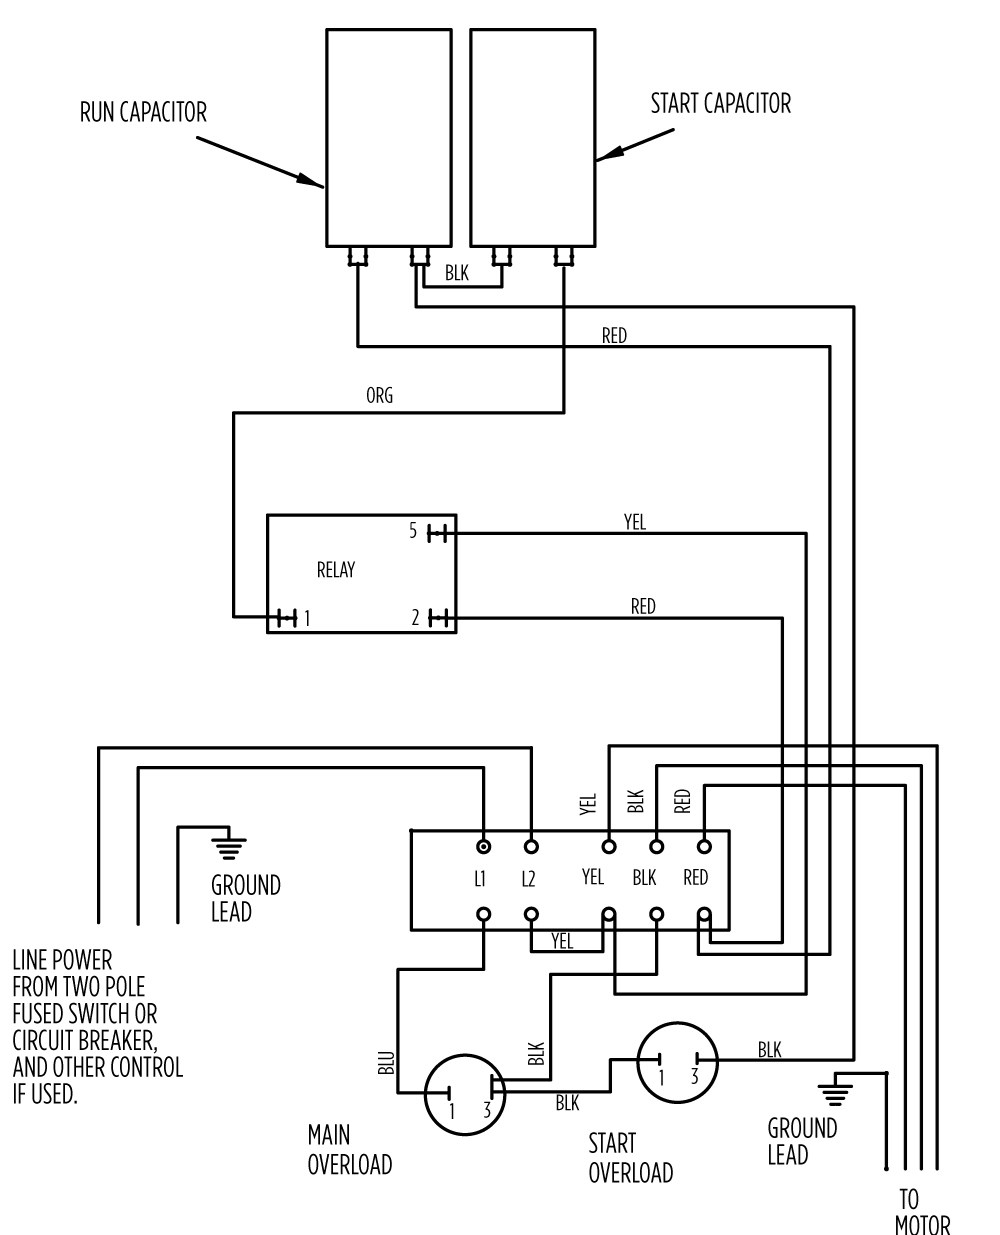 2 hp standard 282 301 8110_aim gallery?format=jpg&quality=80 aim manual page 55 single phase motors and controls motor 5 hp electric motor single phase wiring diagram at reclaimingppi.co